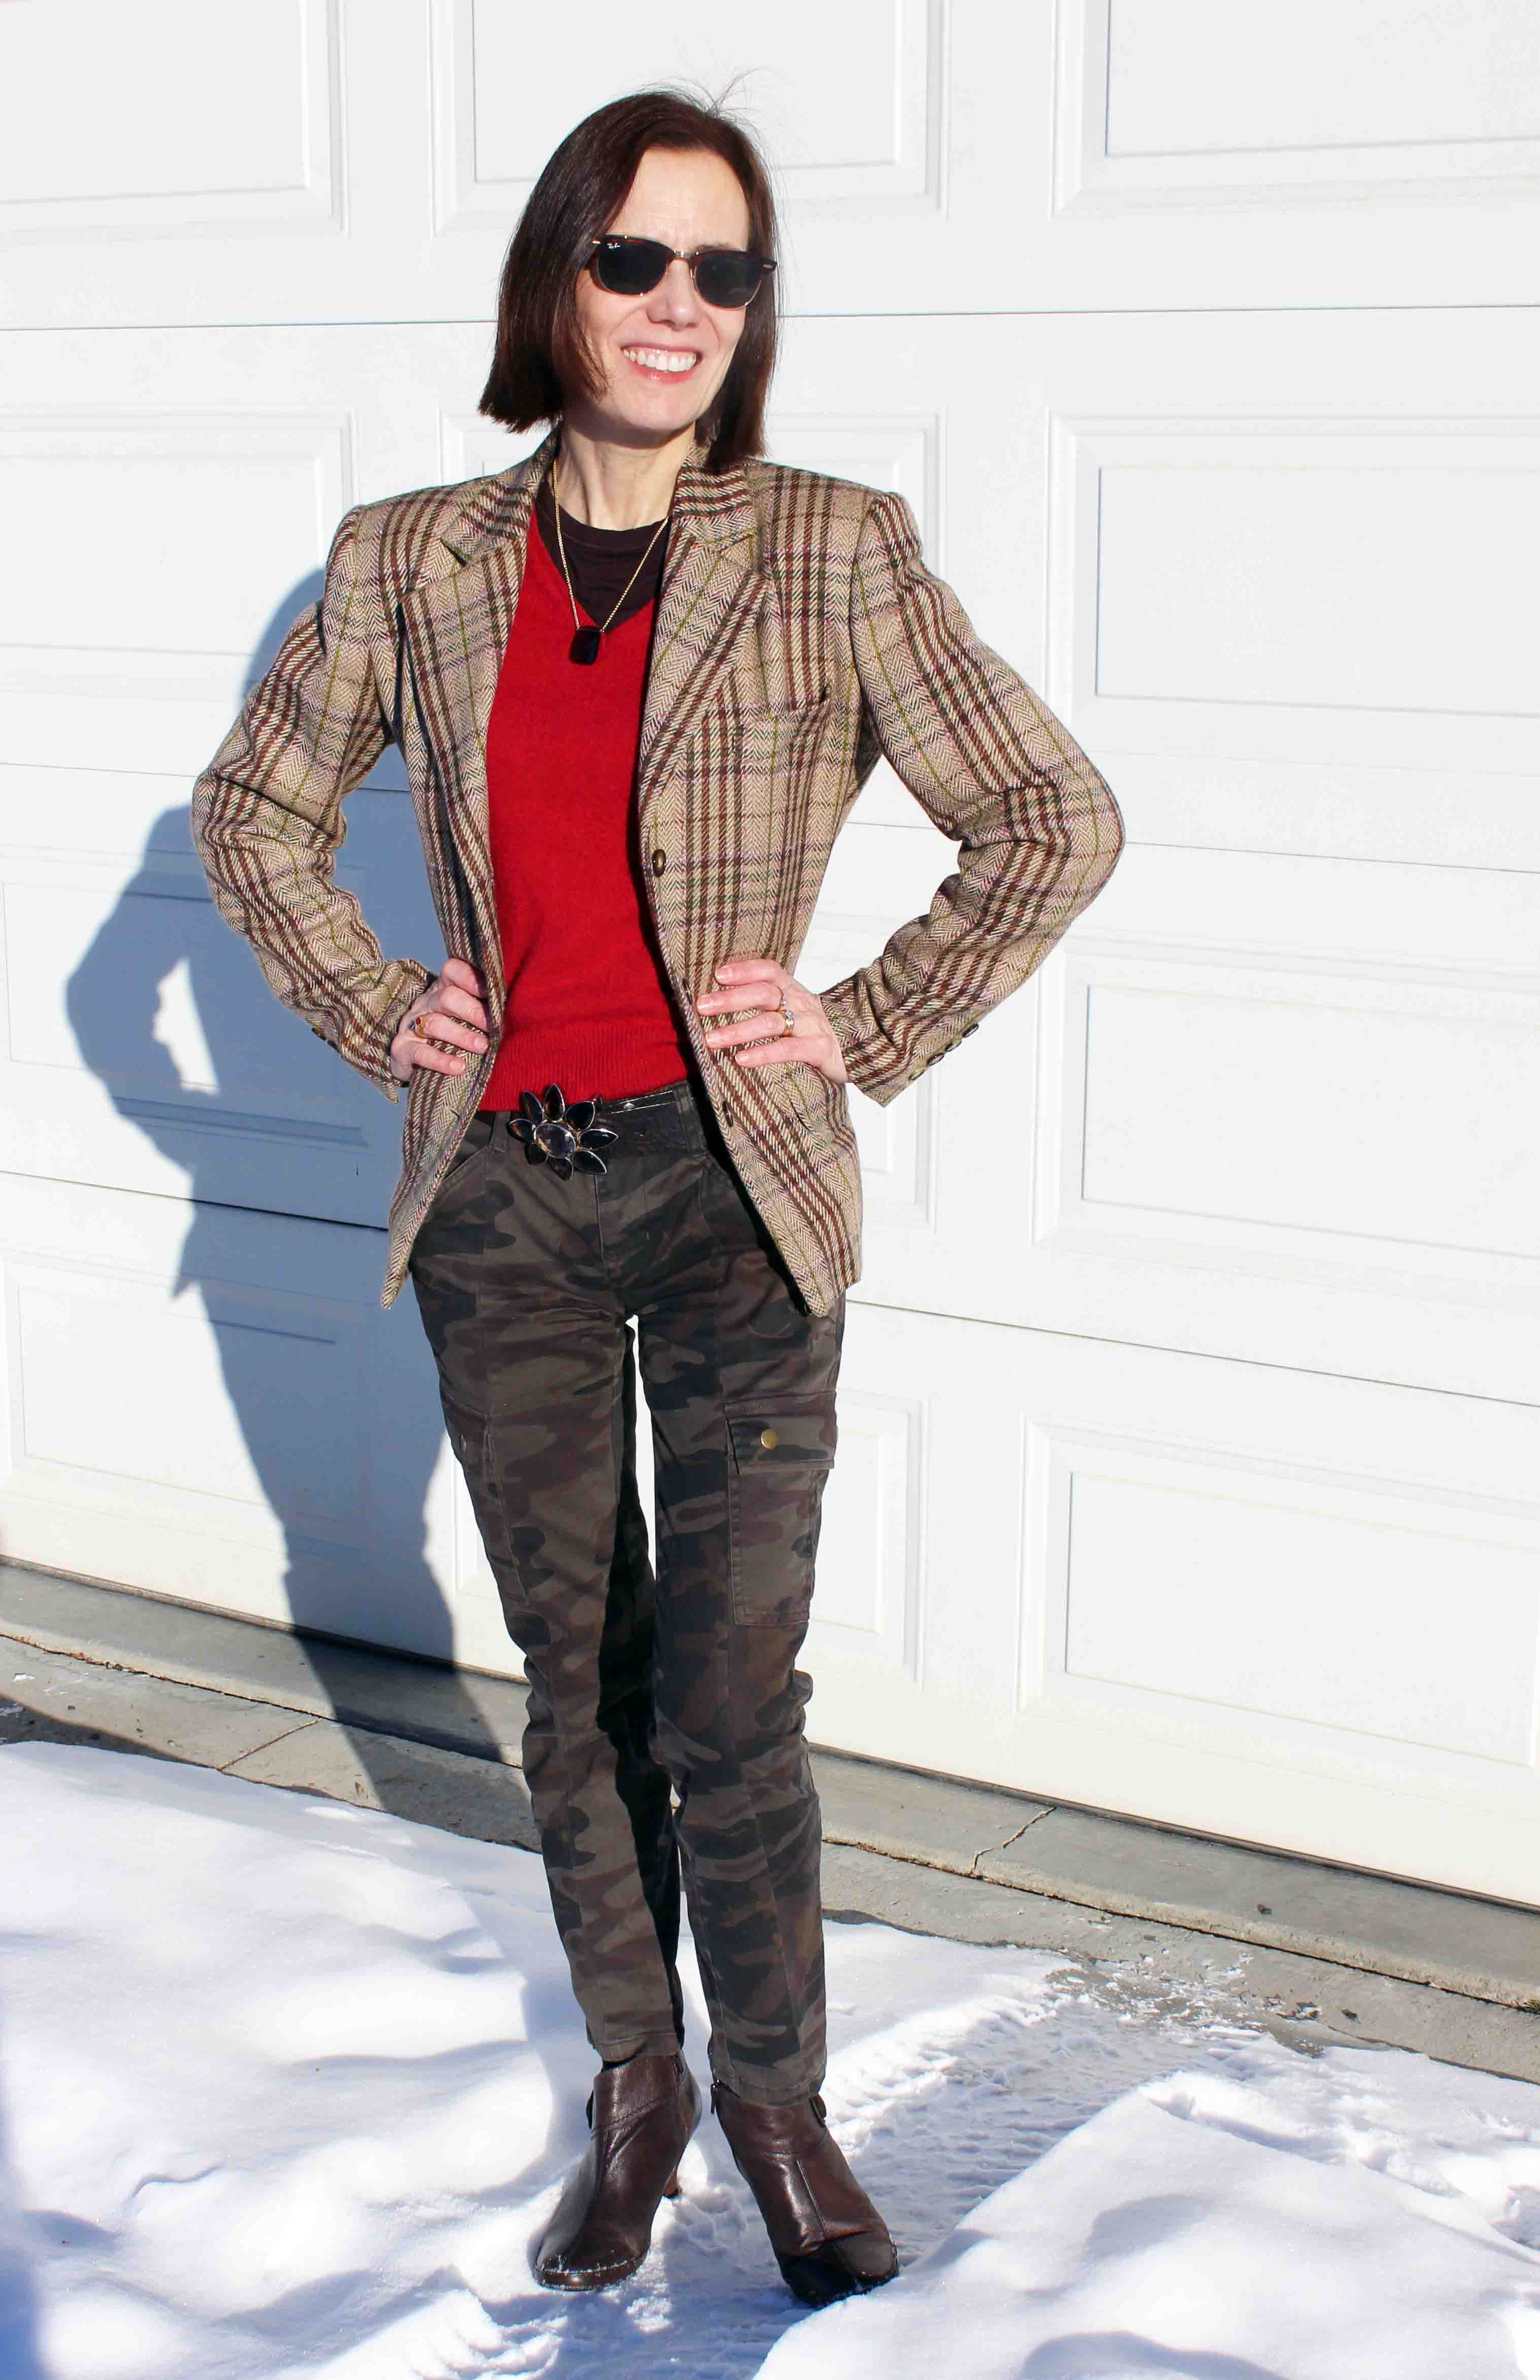 See this great camouflage with tartan look